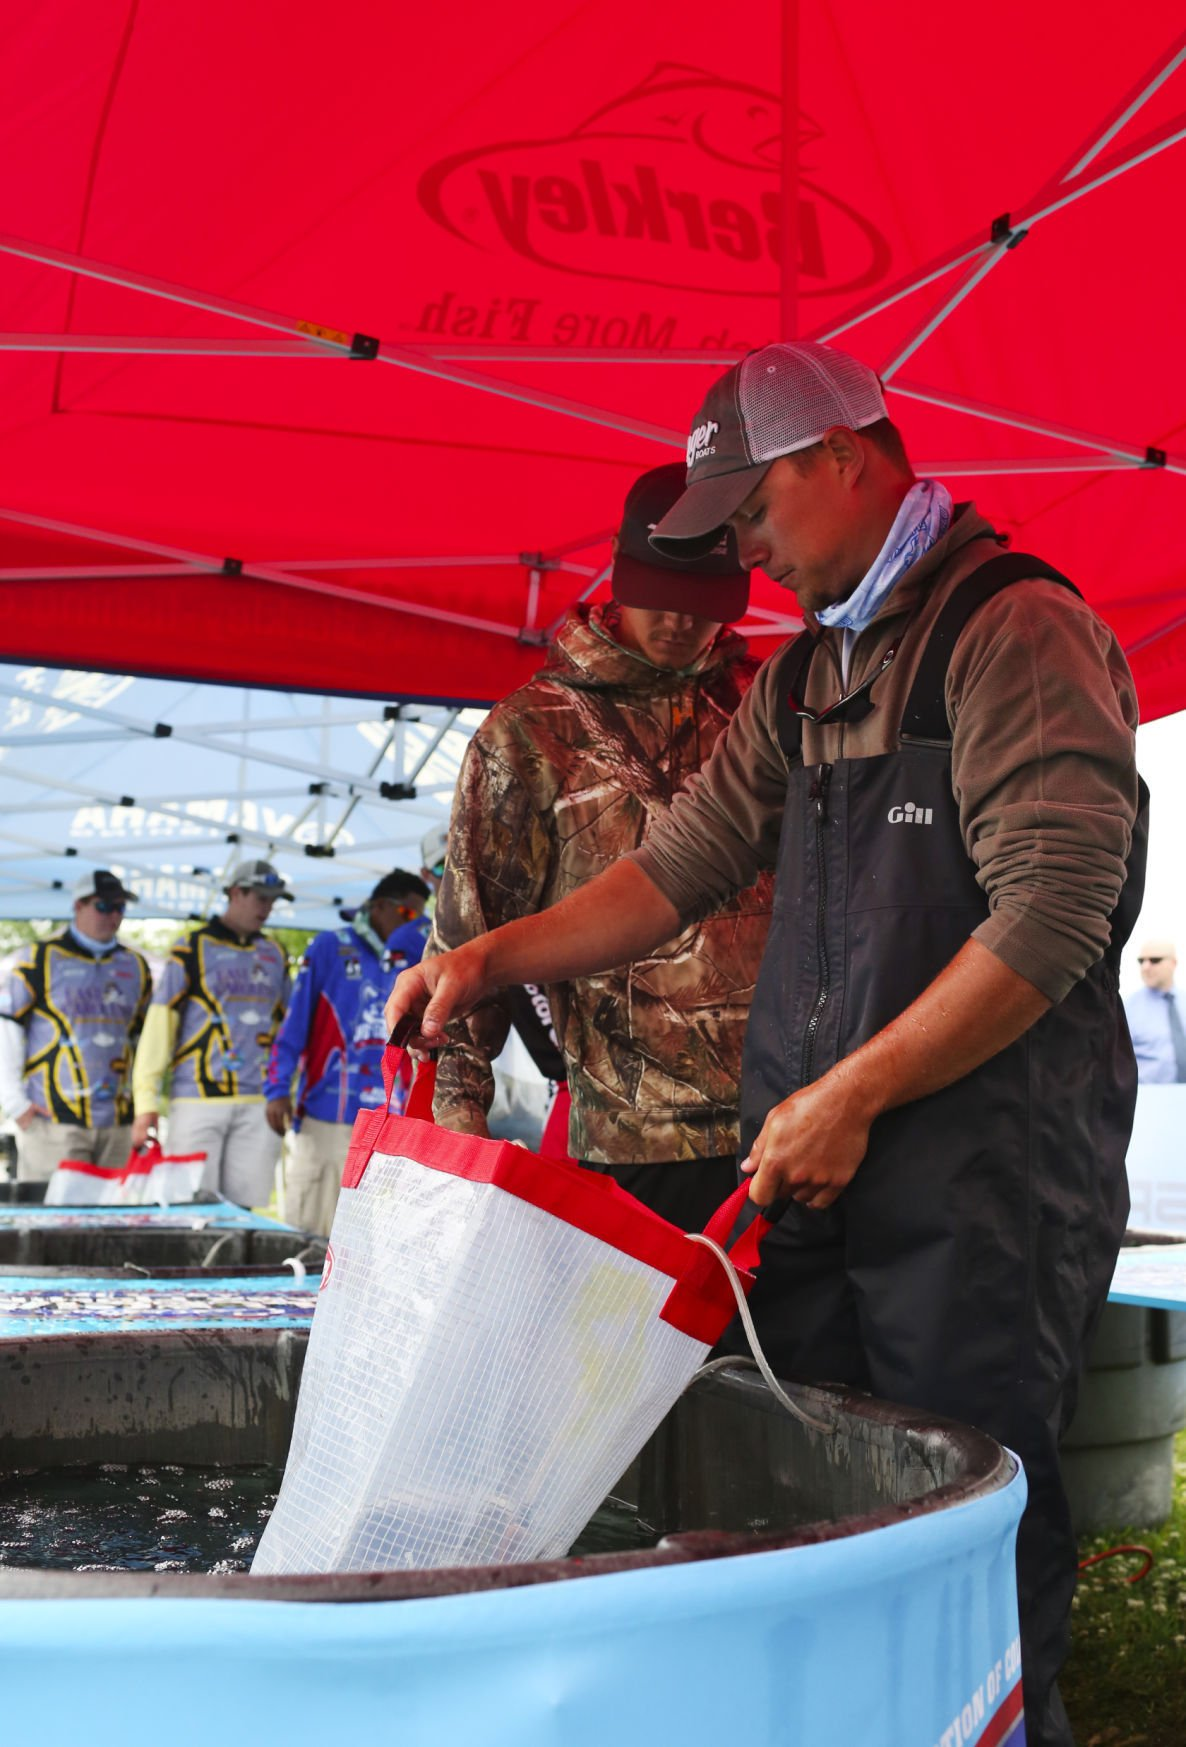 Boatus collegiate bass fishing championship gallery for College bass fishing